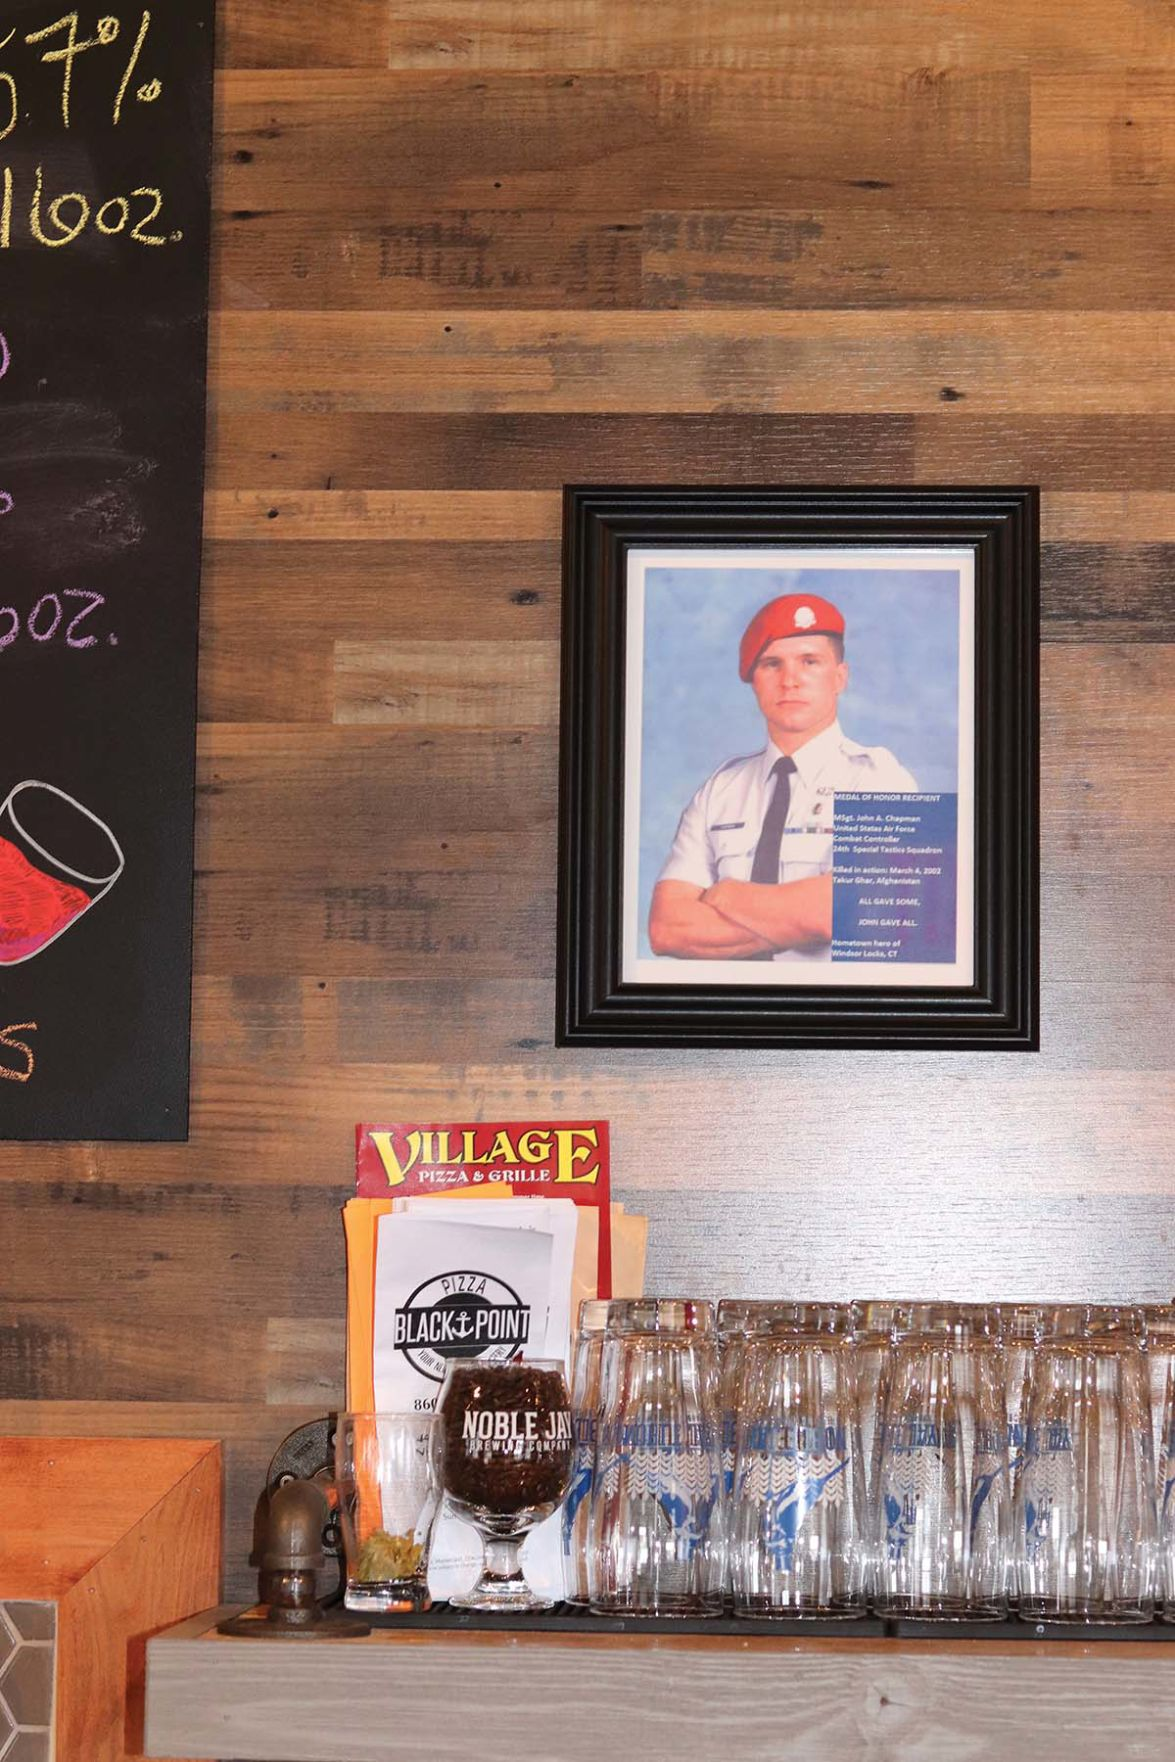 A photo of John Chapman hangs behind the bar at Noble Jay Brewing Co. in Niantic.